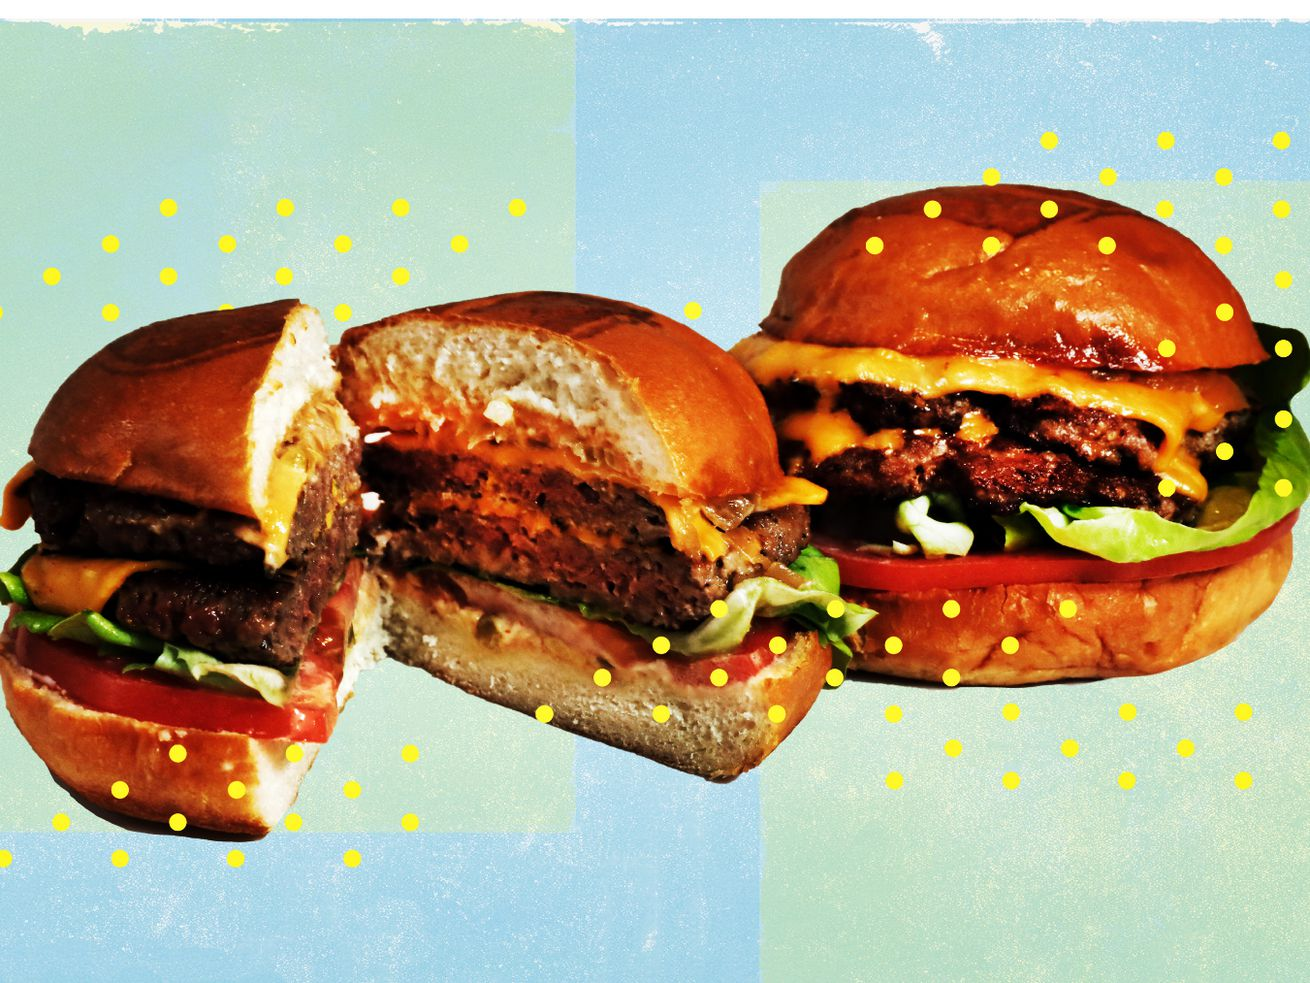 The Beyond Burger and Impossible Whopper look and taste a lot like real meat.